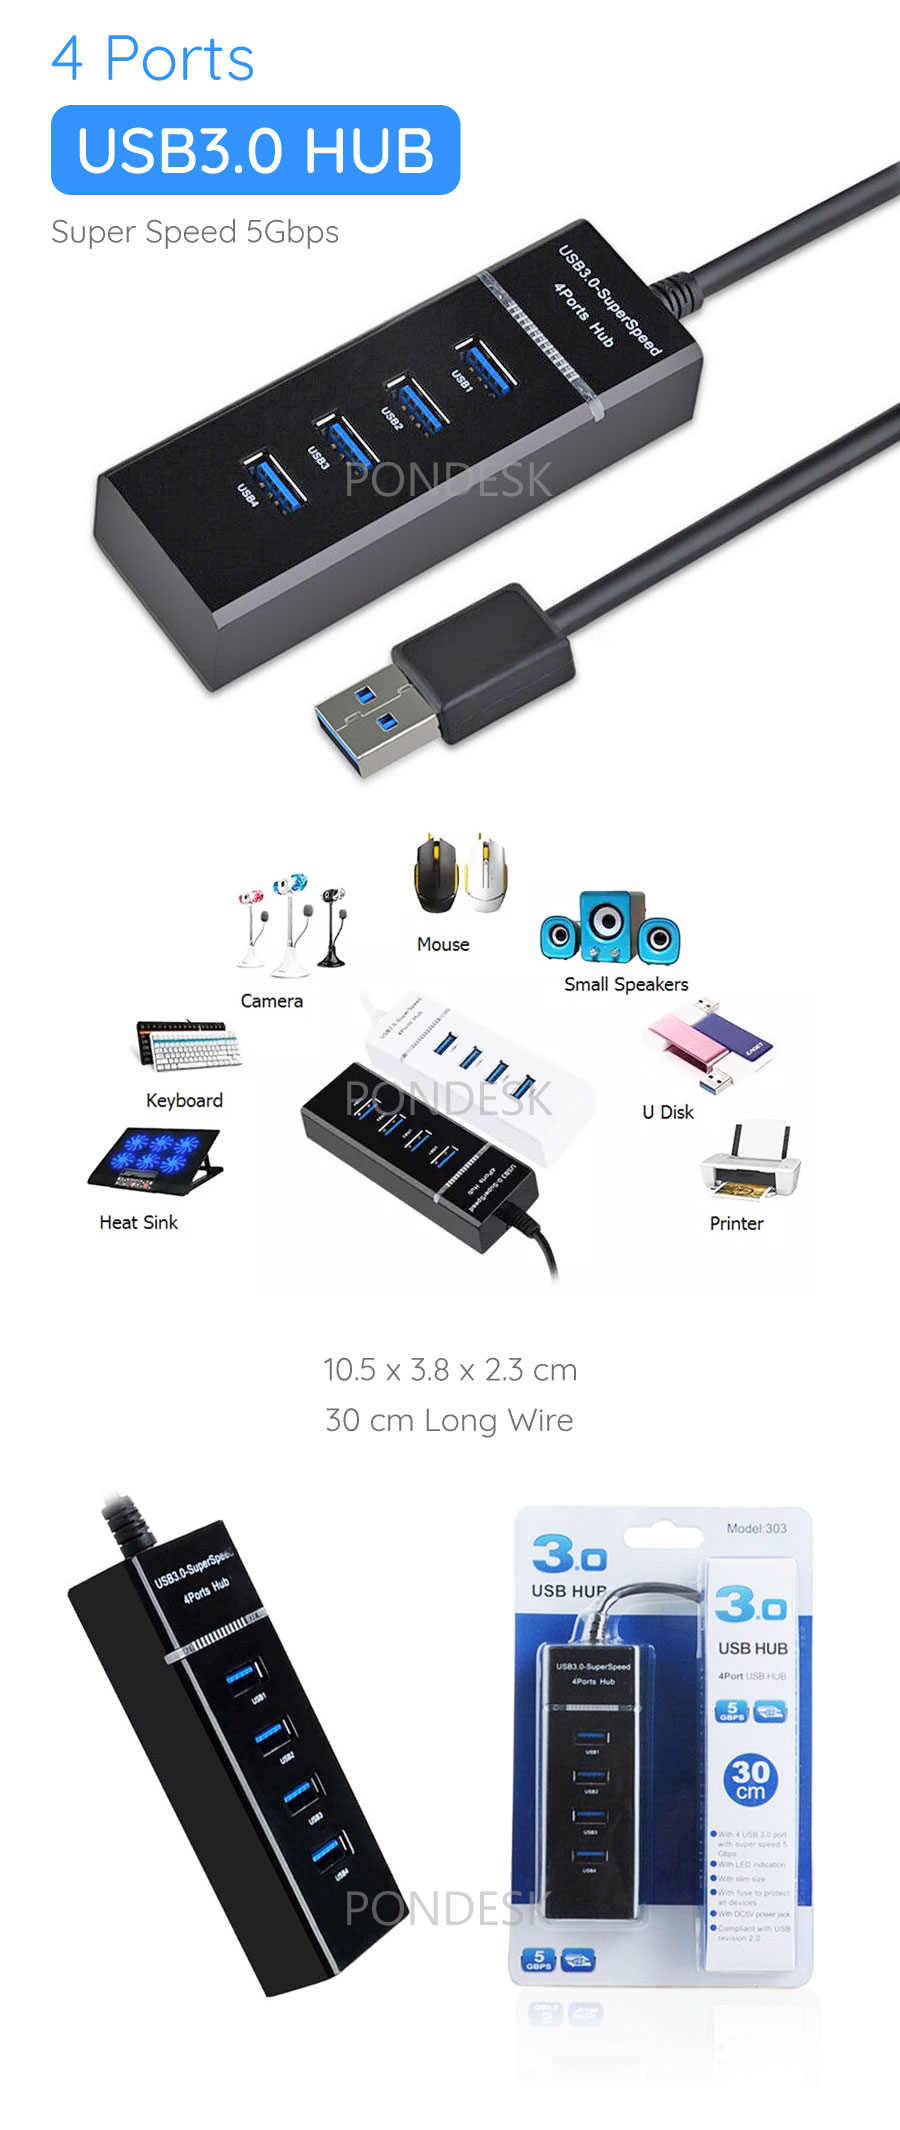 High Speed 5Gbps 4 Ports USB 3.0 HUB Splitter with Cable - ORHO-008   Image